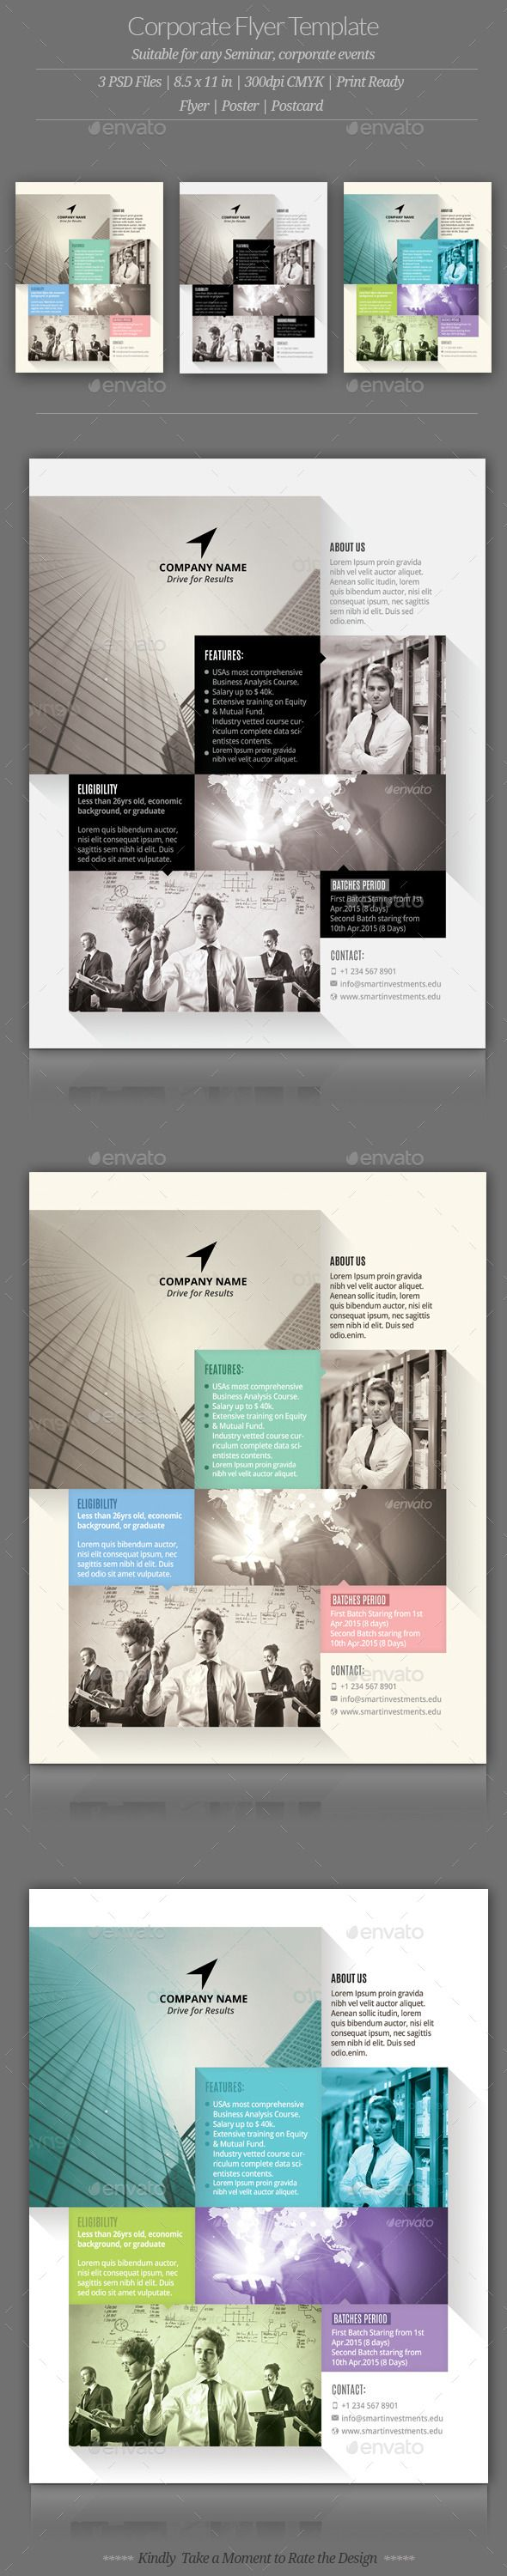 best ideas about marketing flyers flyers flyer corporate flyer templates